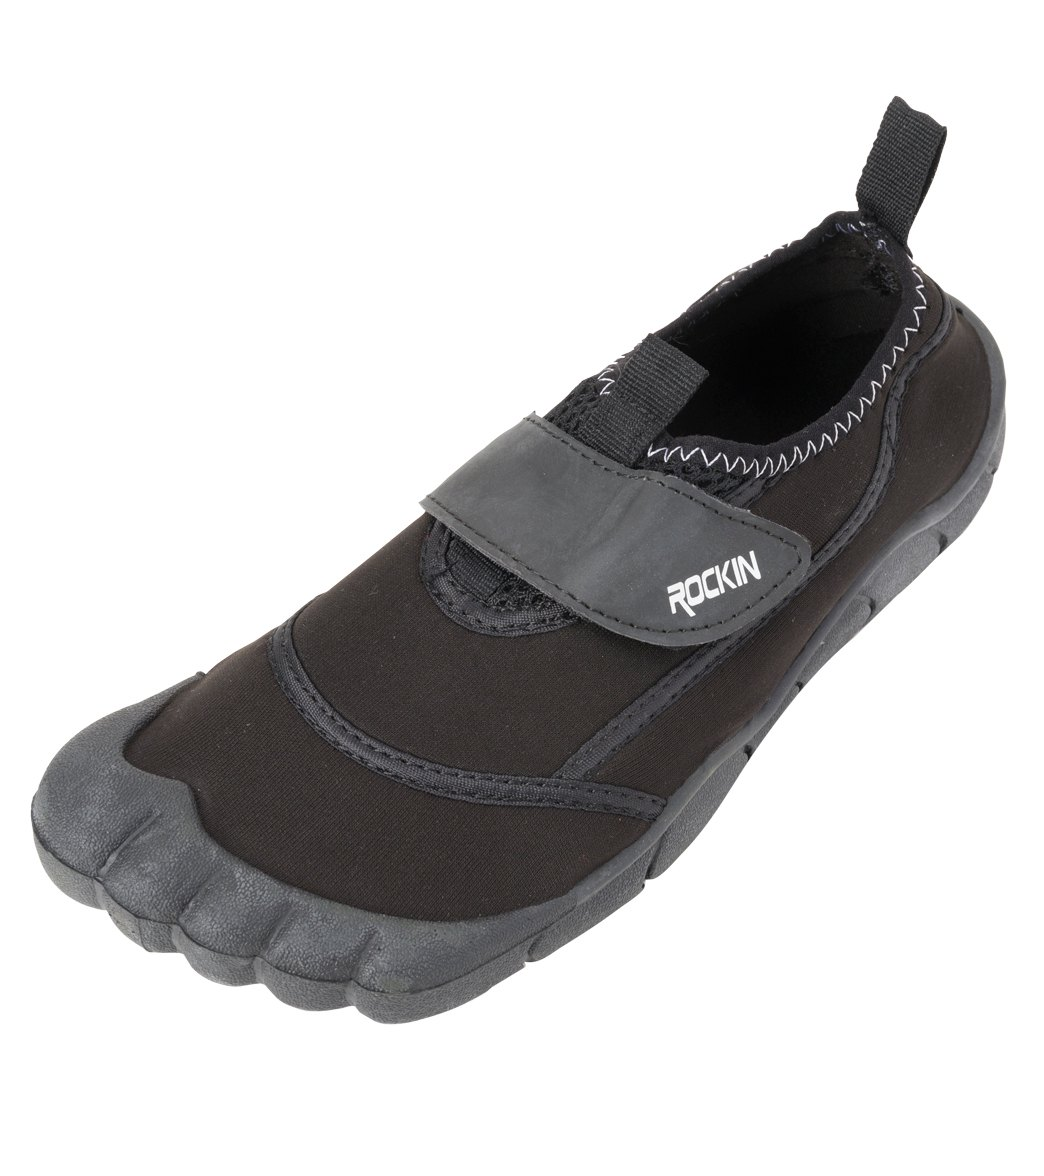 Foot Comfort Shoes Uk